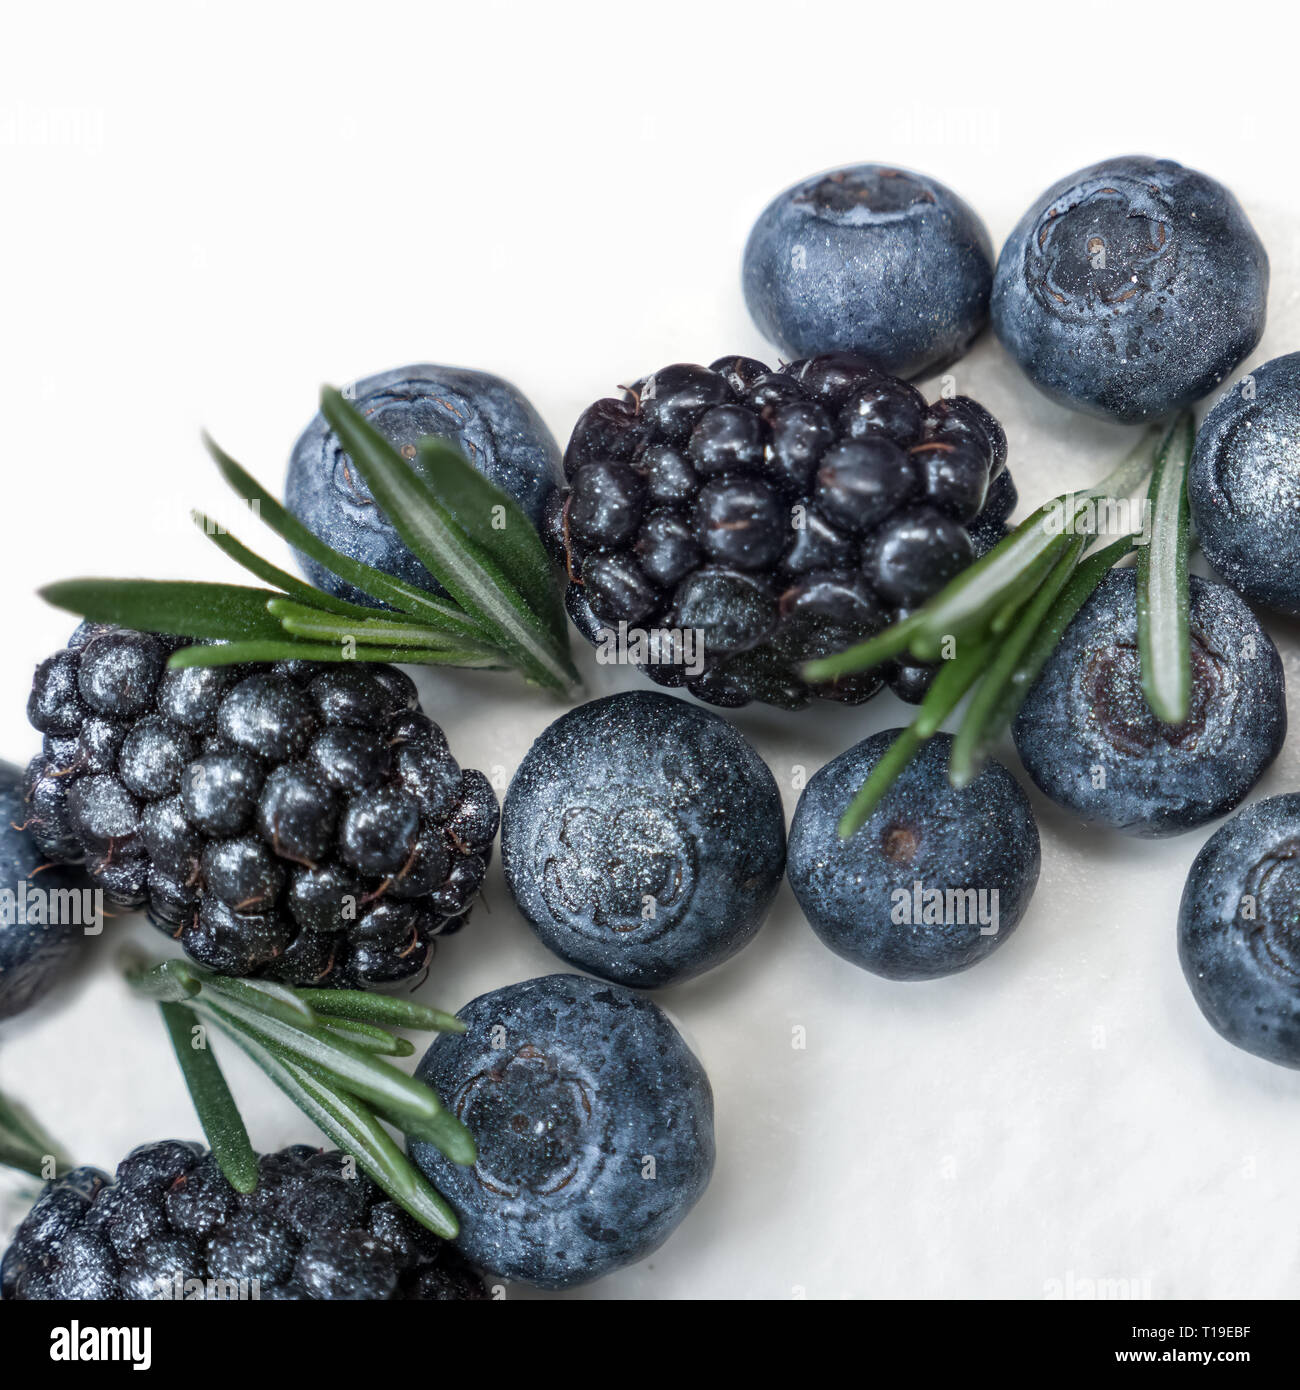 Cake with blueberry, blackbarry and rosemary. Decorating cakes. Baking, sweets, confection, lollipops, cream. Healthy food concept. - Stock Image